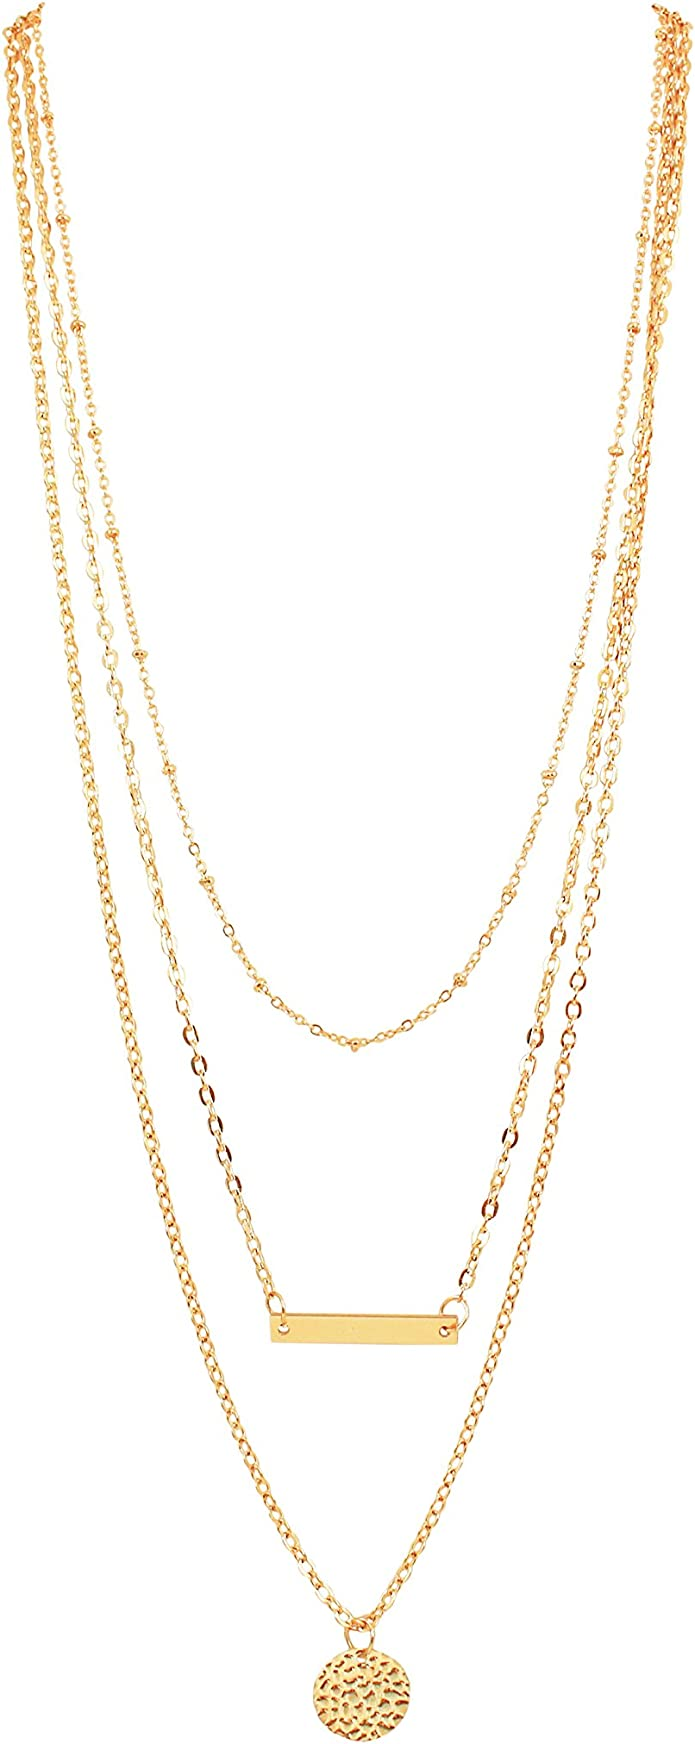 Amazon Com Pop Fashion Gold Multi Layered Clavicle Necklace Triple Layer Gold Pendant Necklace For Women Layered Choker Chain Necklace 3 Multi Layer Necklace Tassel Charm Bar Necklaces Msrp 54 Jewelry